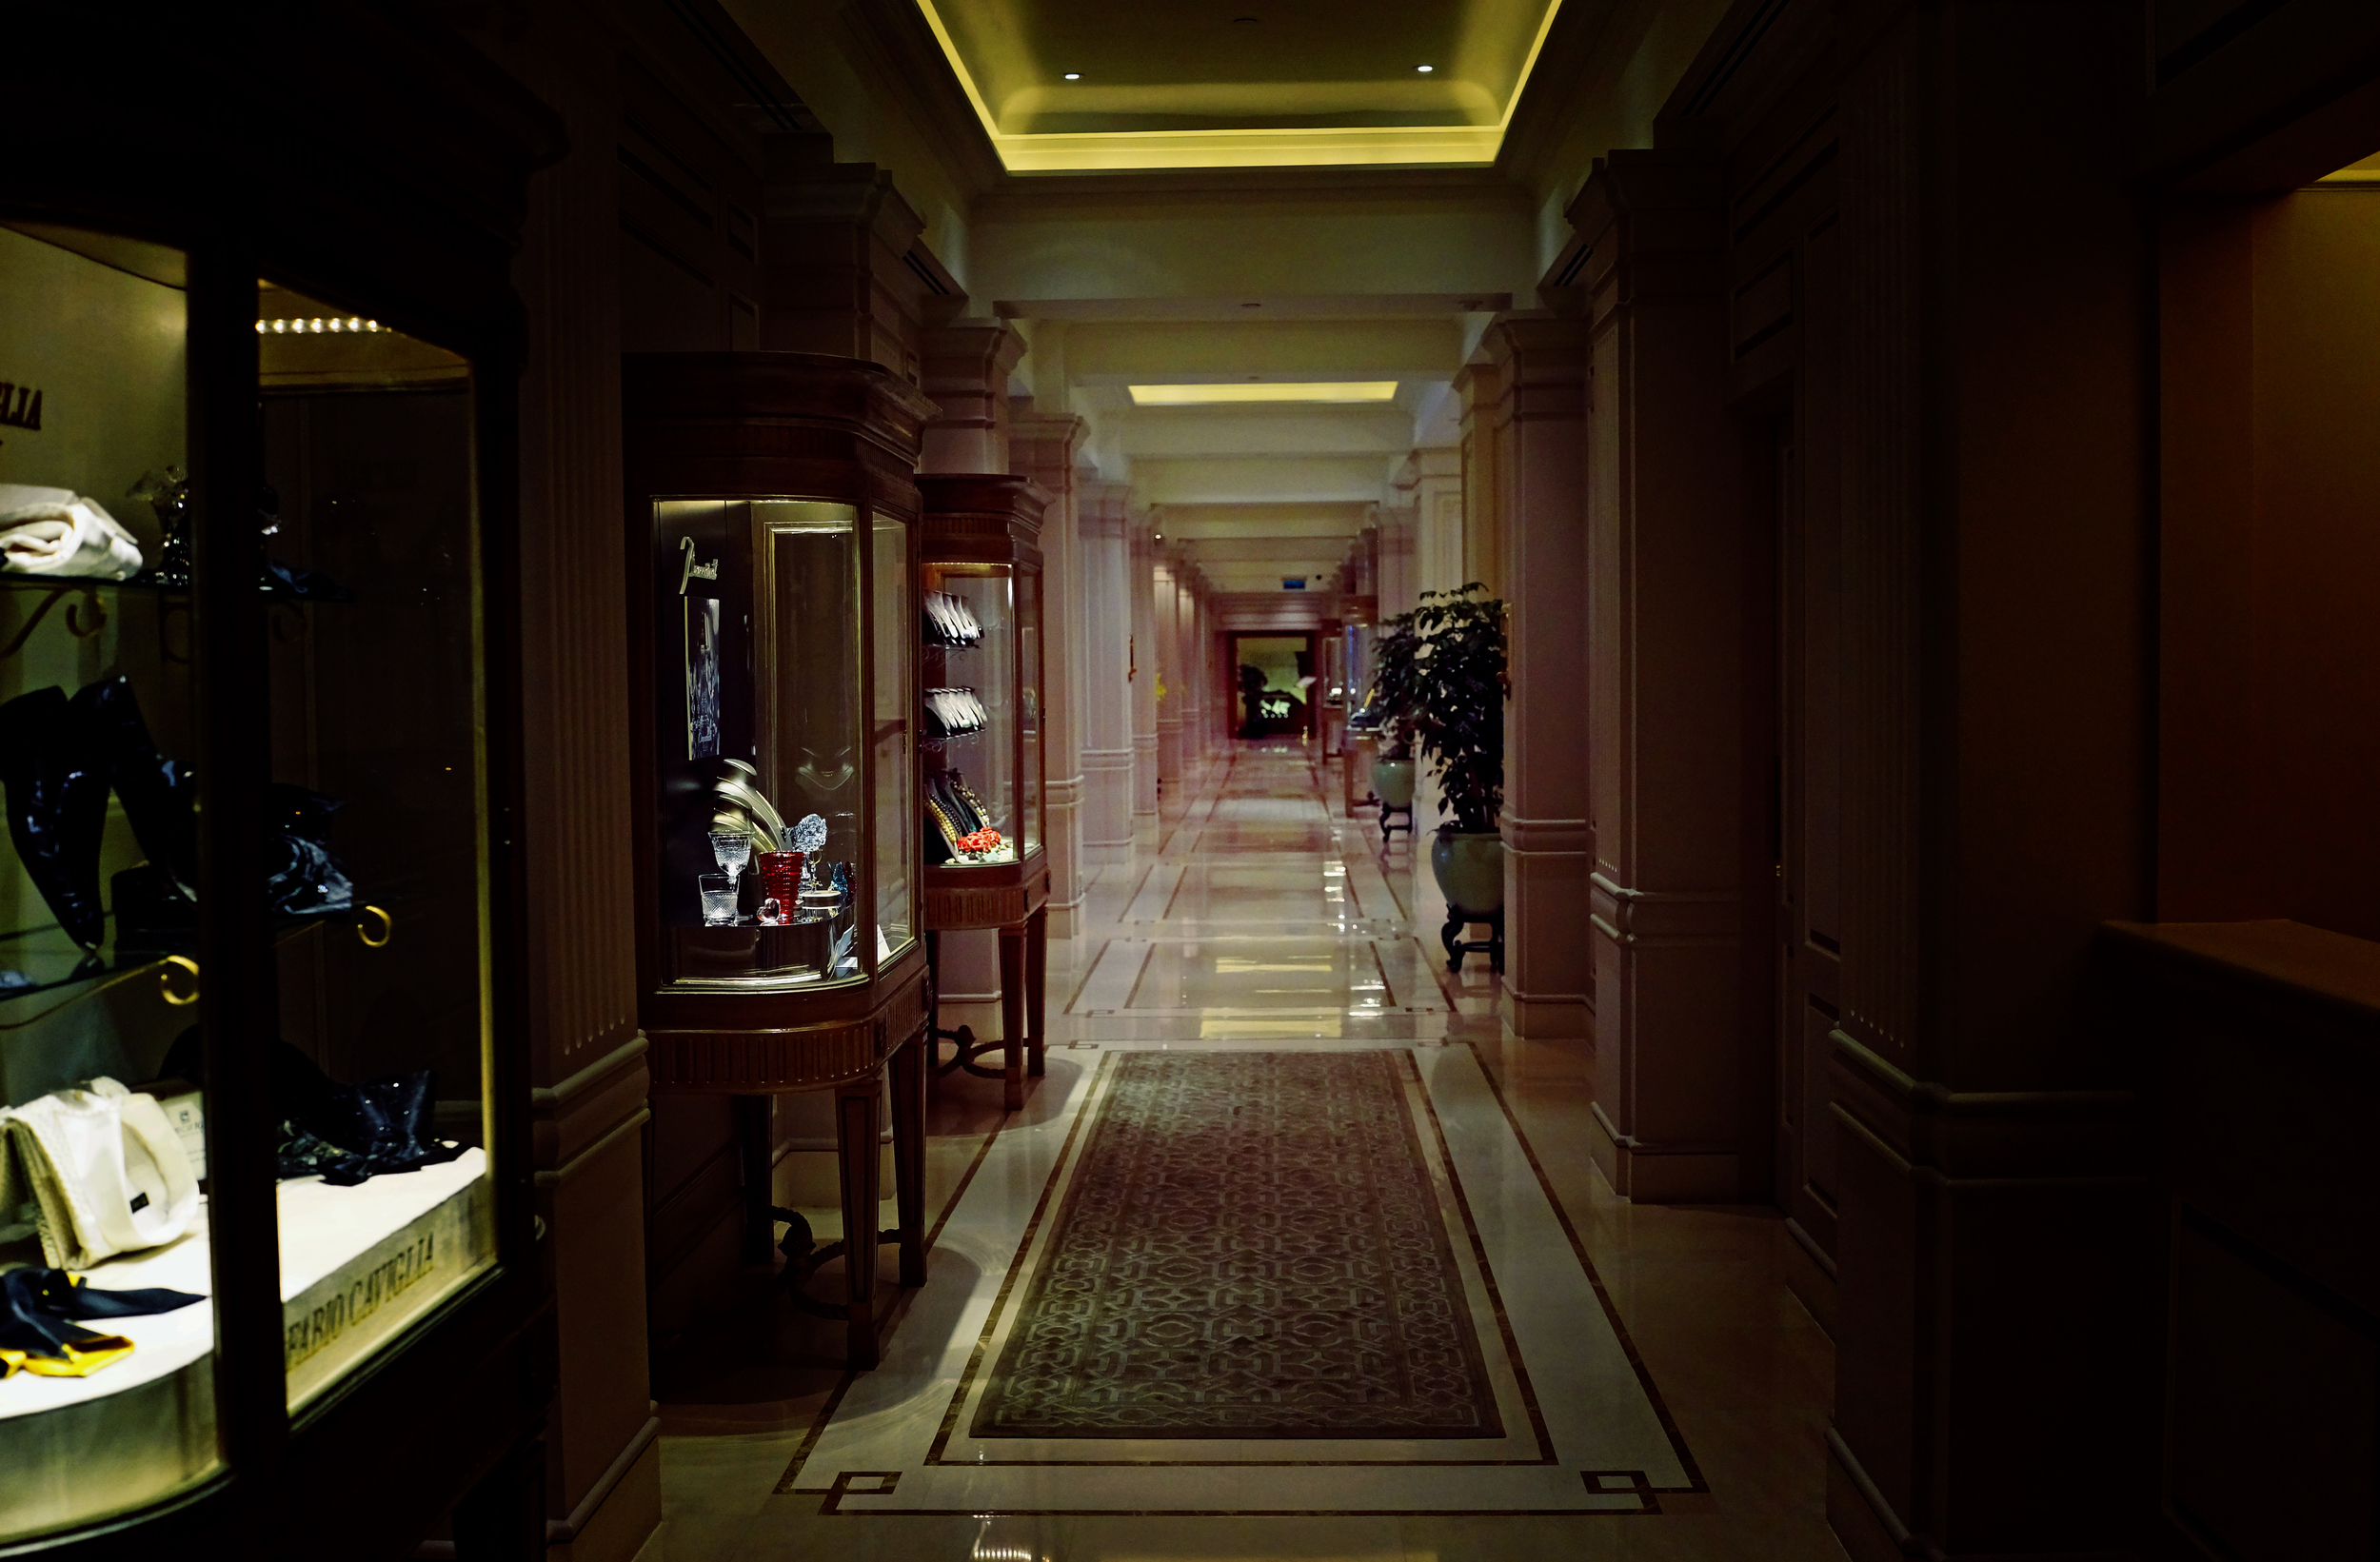 Sometimes the simple pleasures are the best and walking the corridors of the Peninsula Hotel (to the exquisite bathrooms!) is right up there.